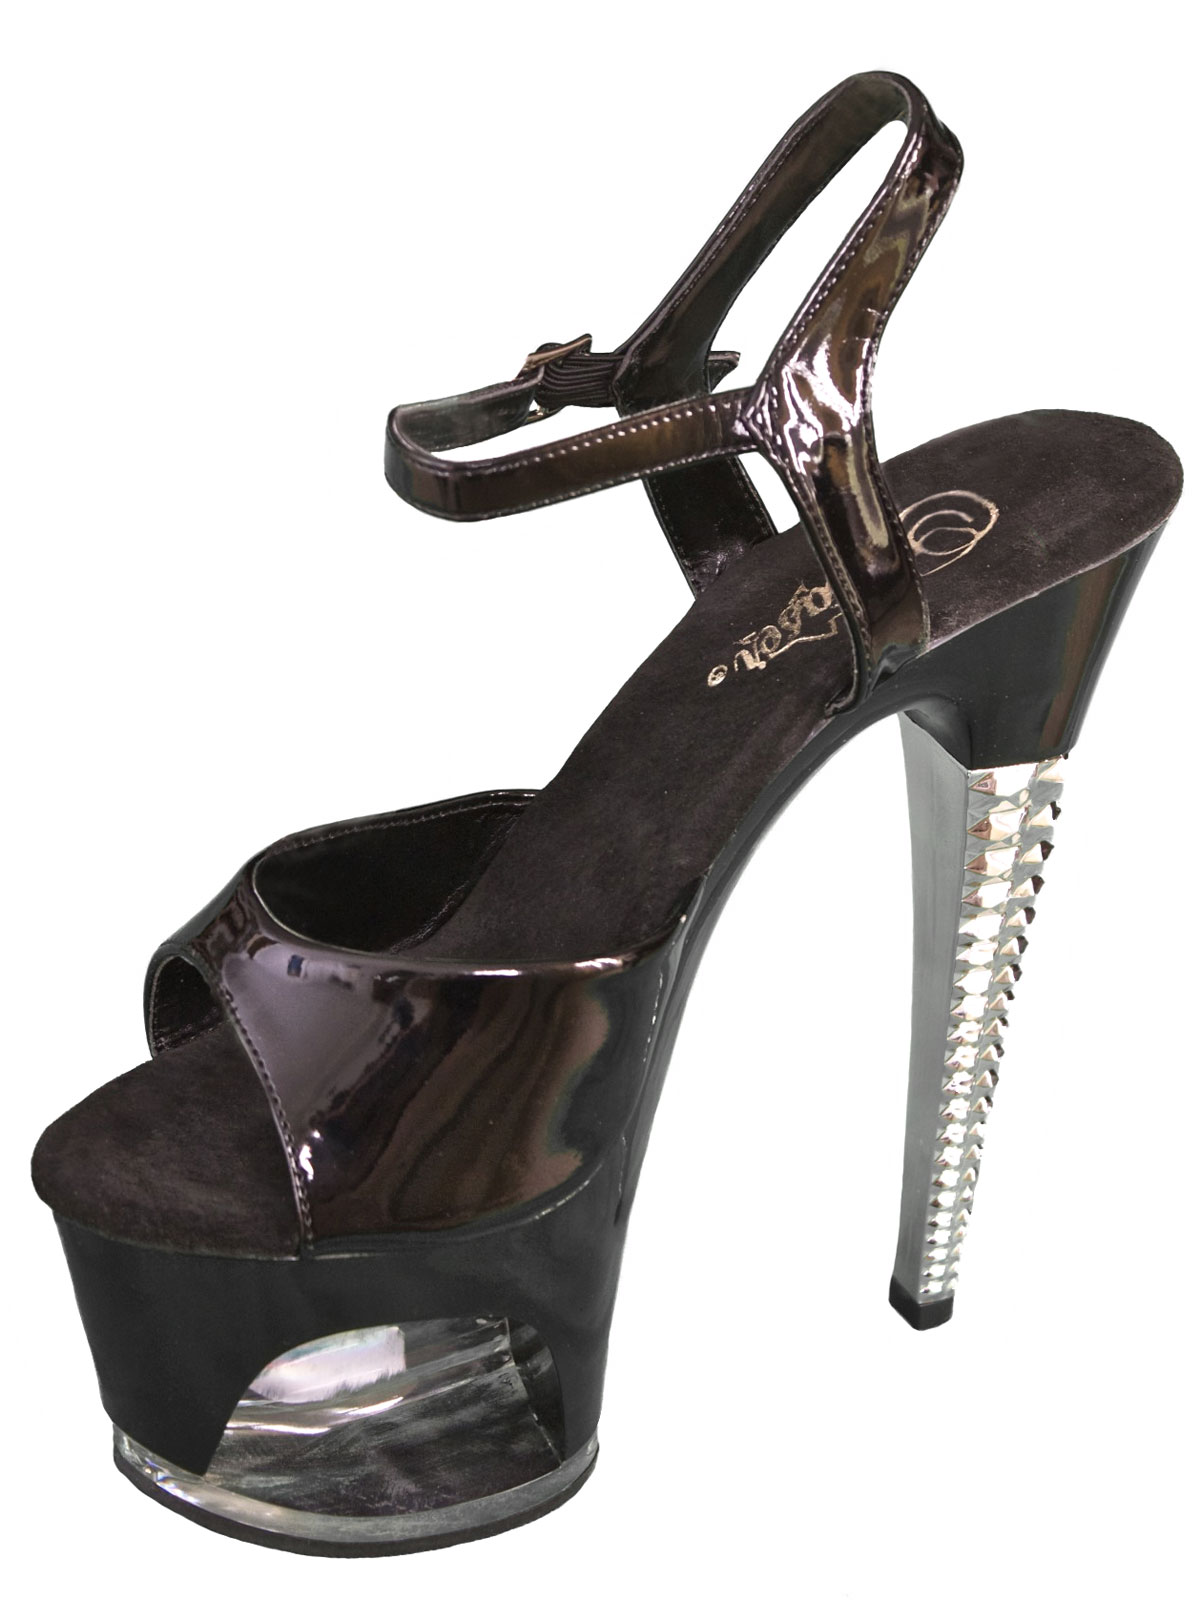 Pleaser Black Patent Platform High Heel Sandals with ankle strap